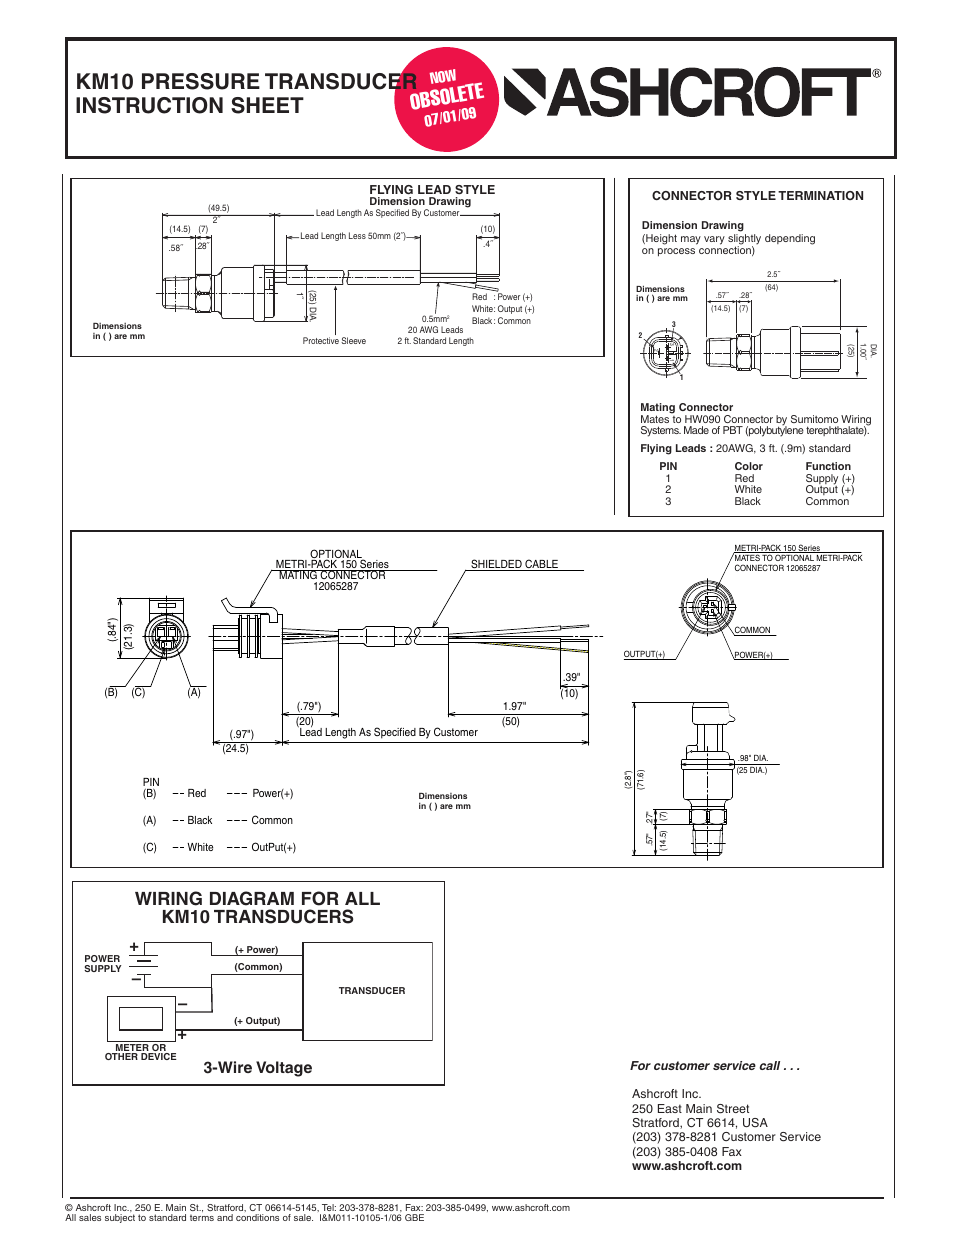 medium resolution of obsole te km10 pressure transducer instruction sheet wiring diagram for all km10 transducers ashcroft km10 compact pressure transducer user manual